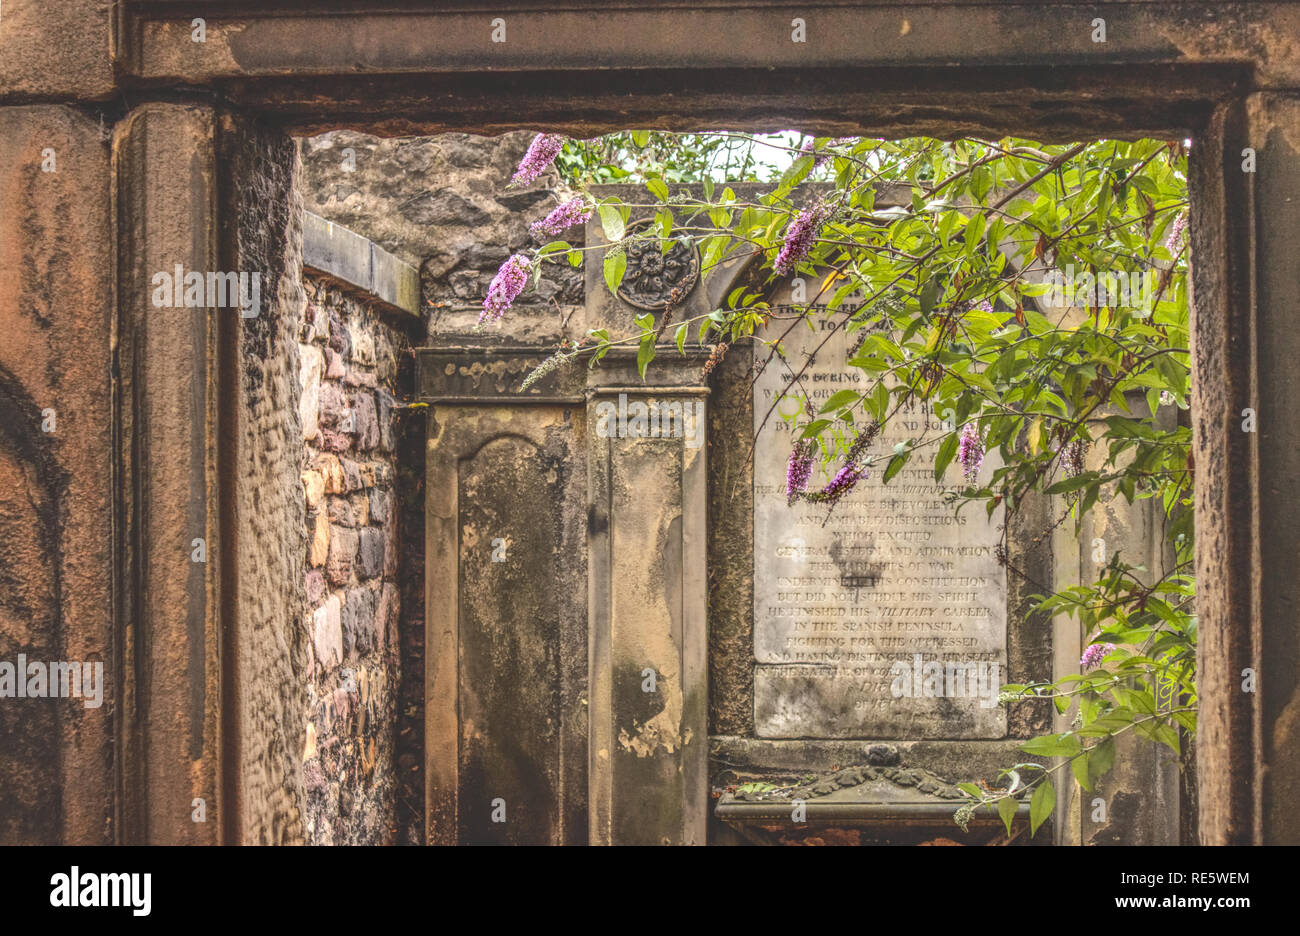 Edinburgh, Scotland / United Kingdom - July 29 2018:  A lilac tree is blossoming inside an old mausoleum of a Scottish soldier during the summer. - Stock Image